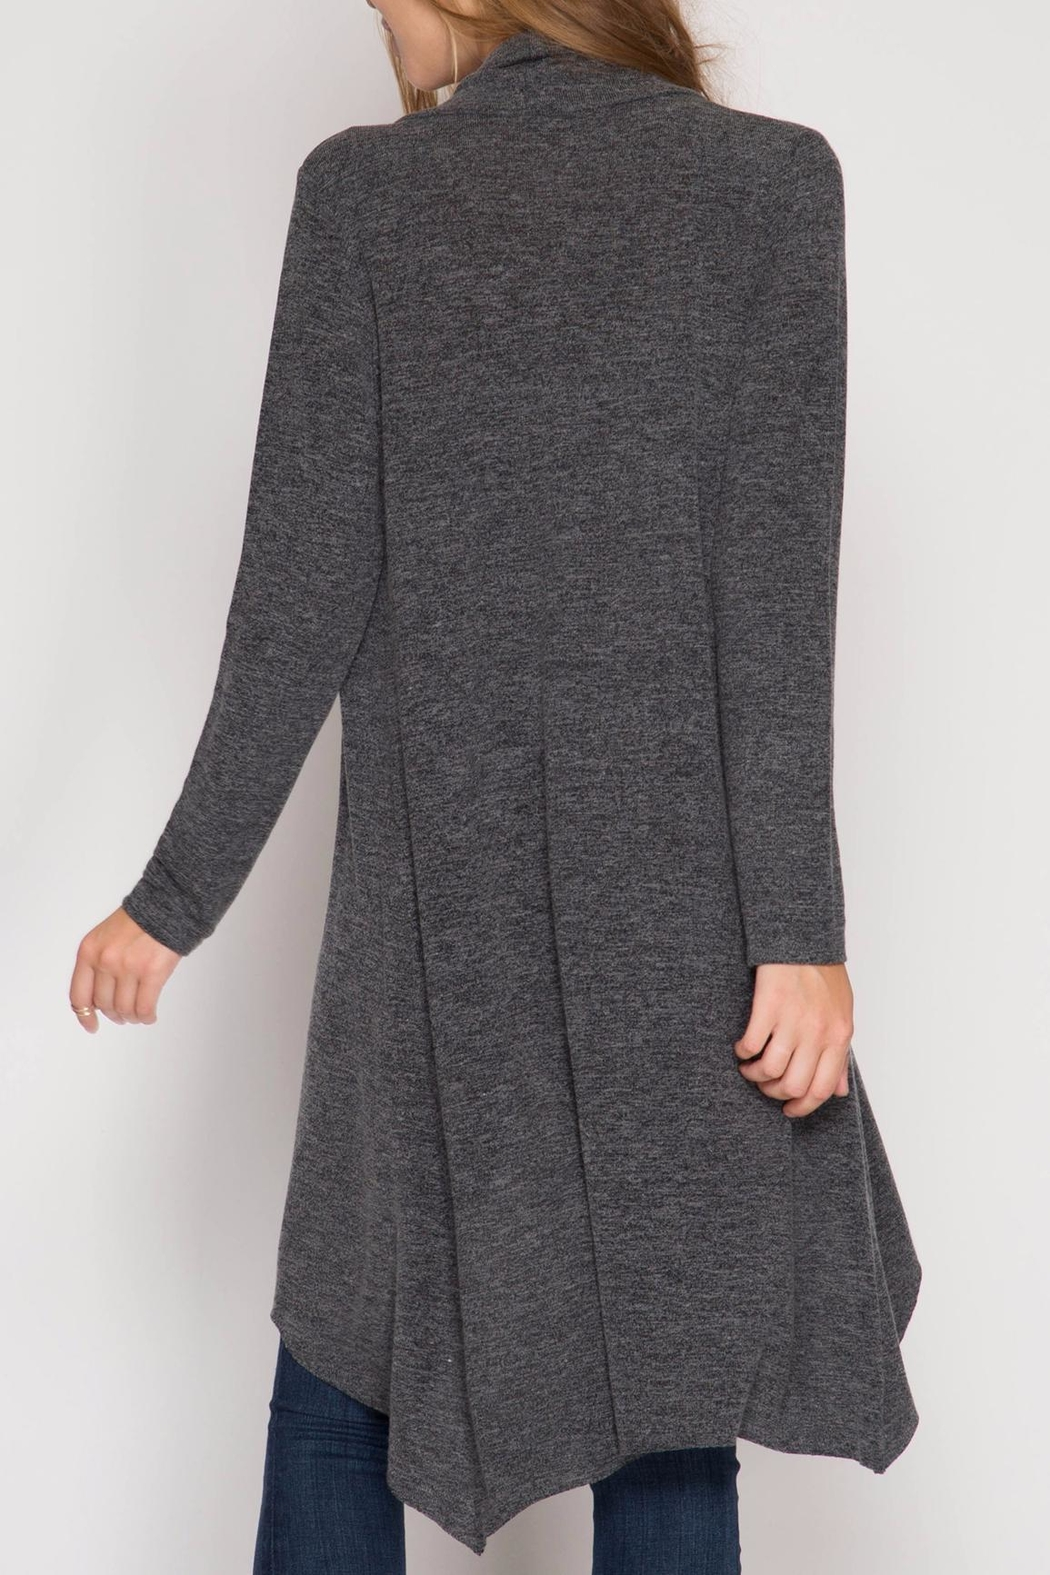 She + Sky Open Knit Cardigan - Front Full Image